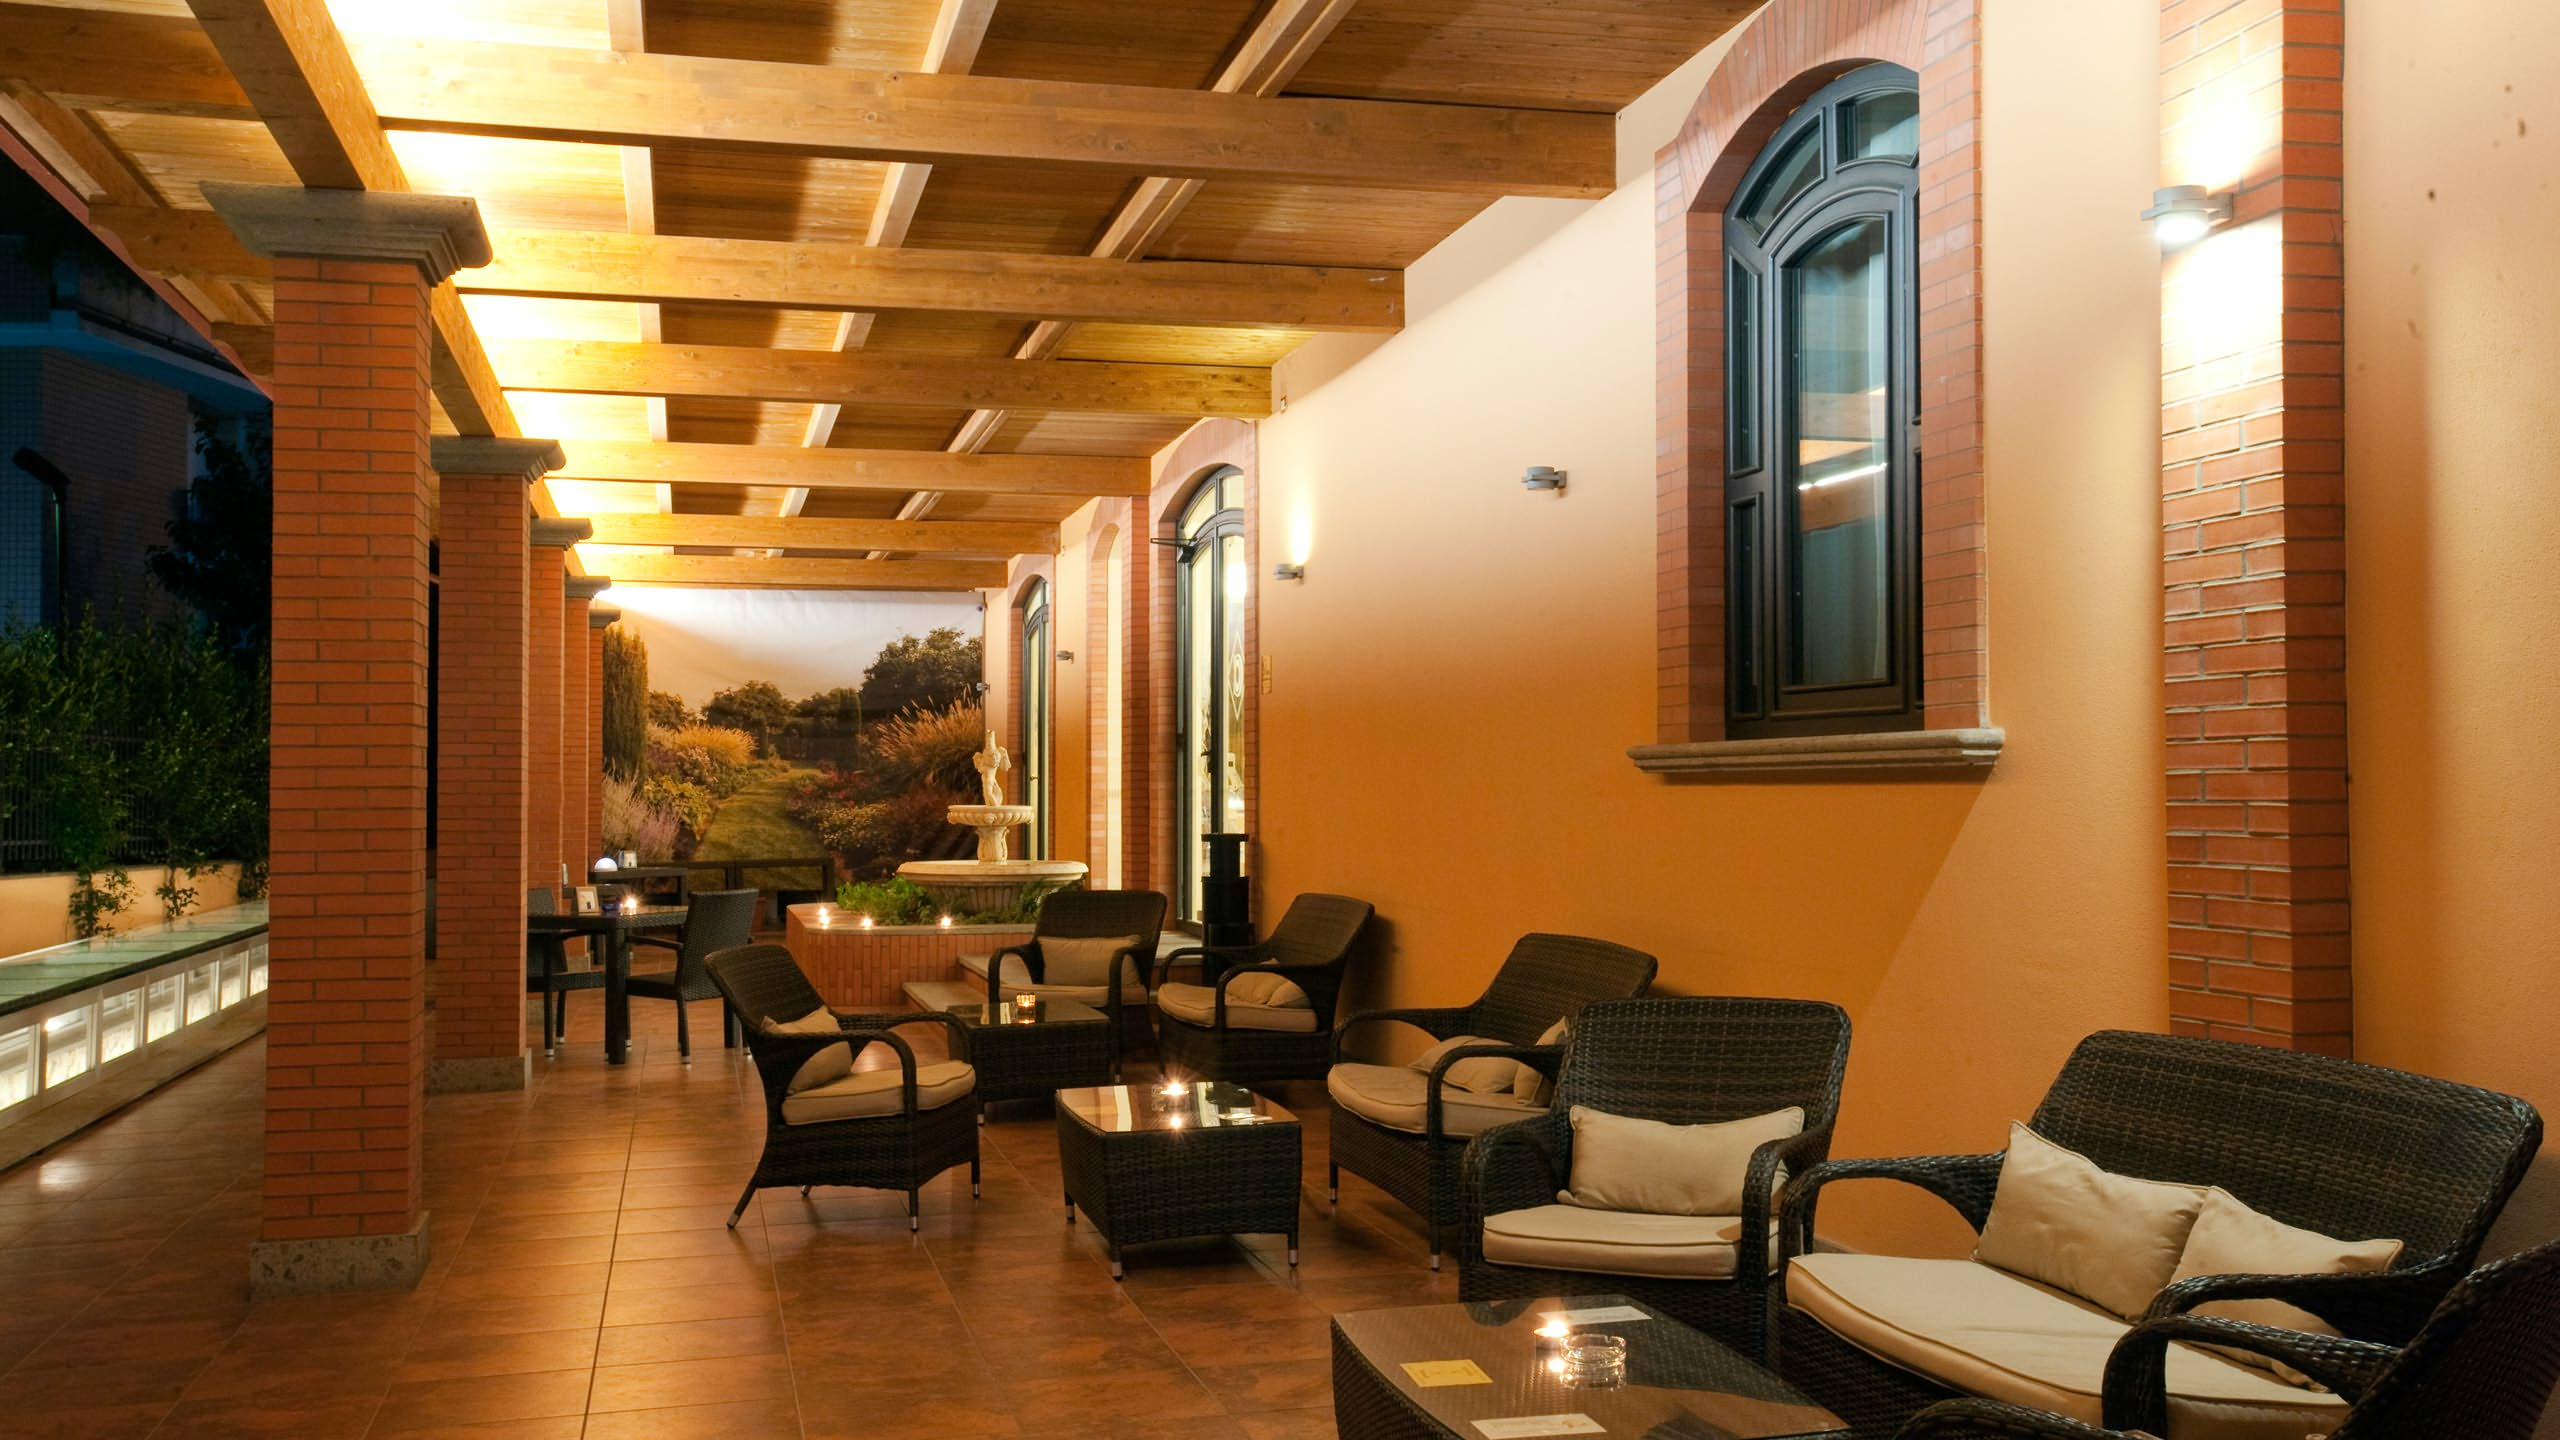 oc-hotel-rome-common-areas-005